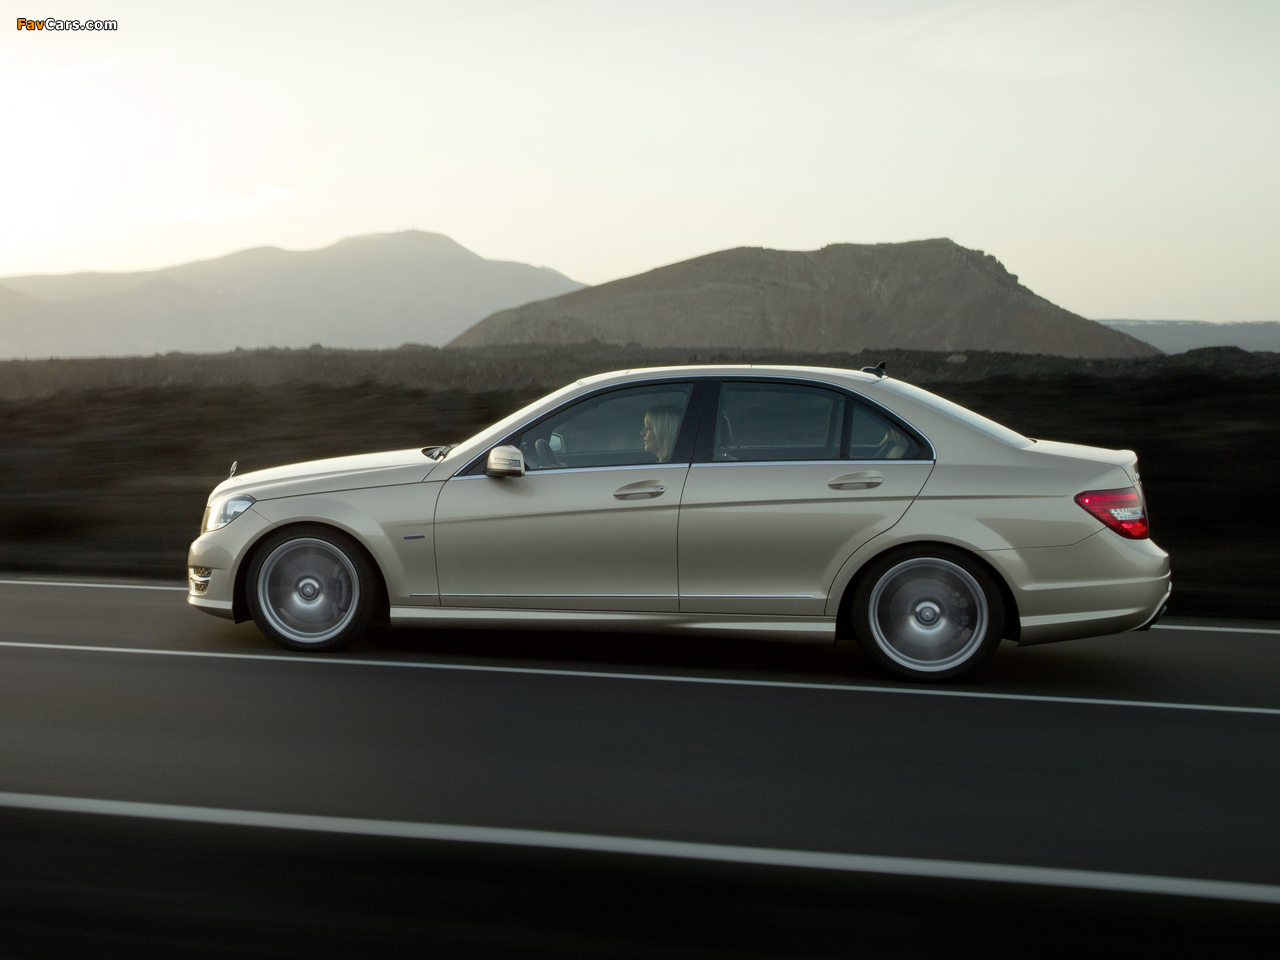 Mercedes-Benz C 350 AMG Sports Package (W204) 2011 photos (1280 x 960)